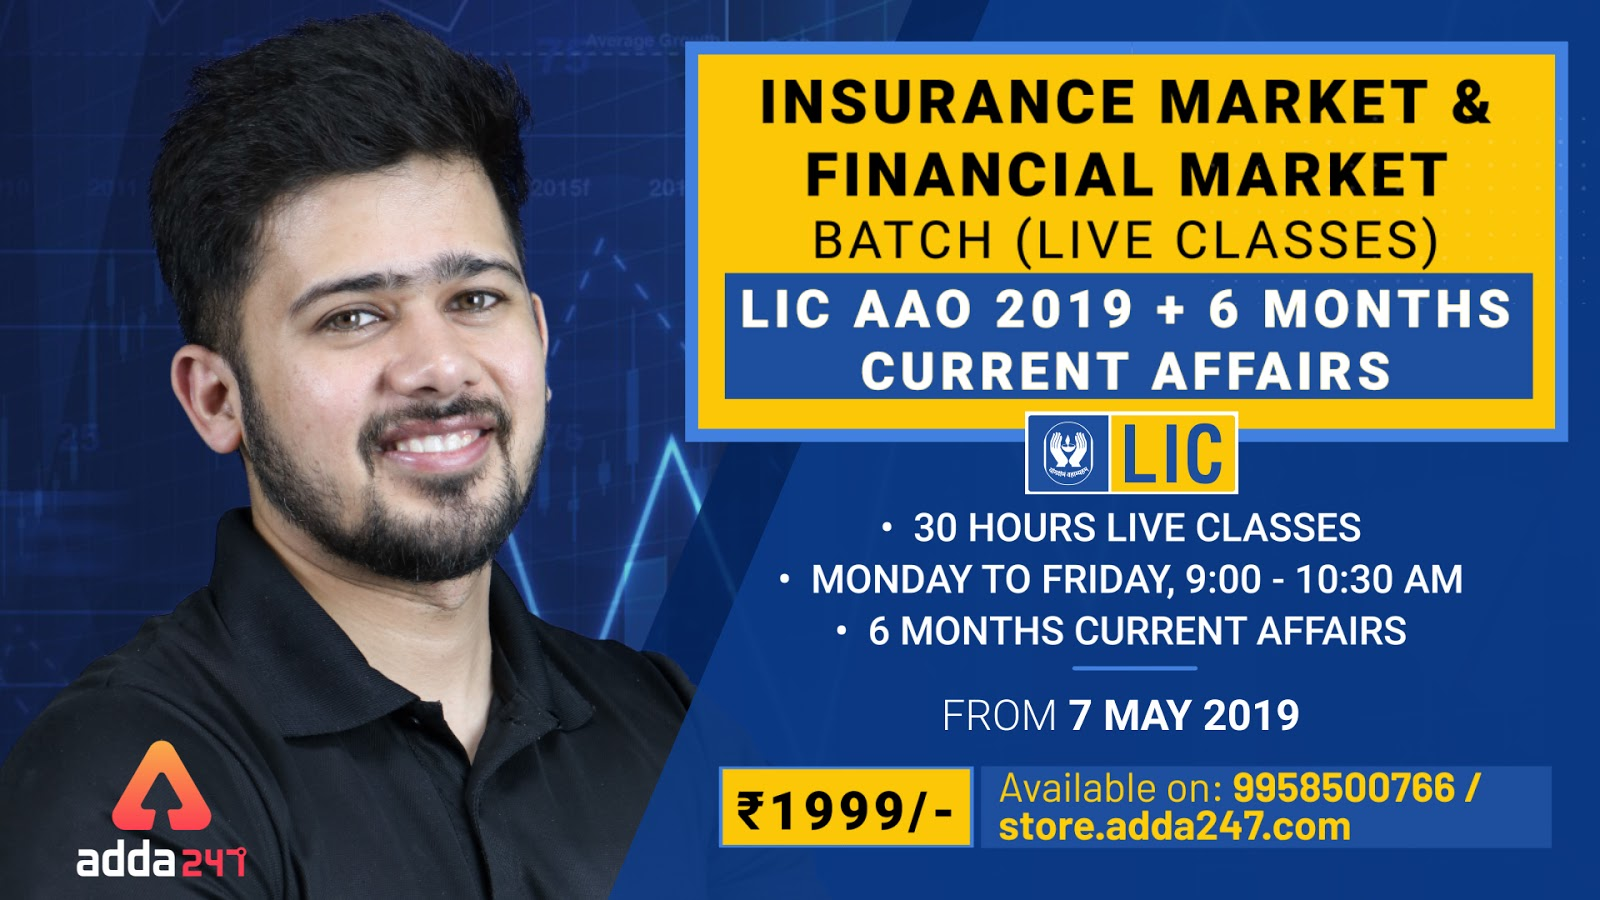 Insurance Market & Financial Market Batch for LIC AAO 2019 by Kush sir.